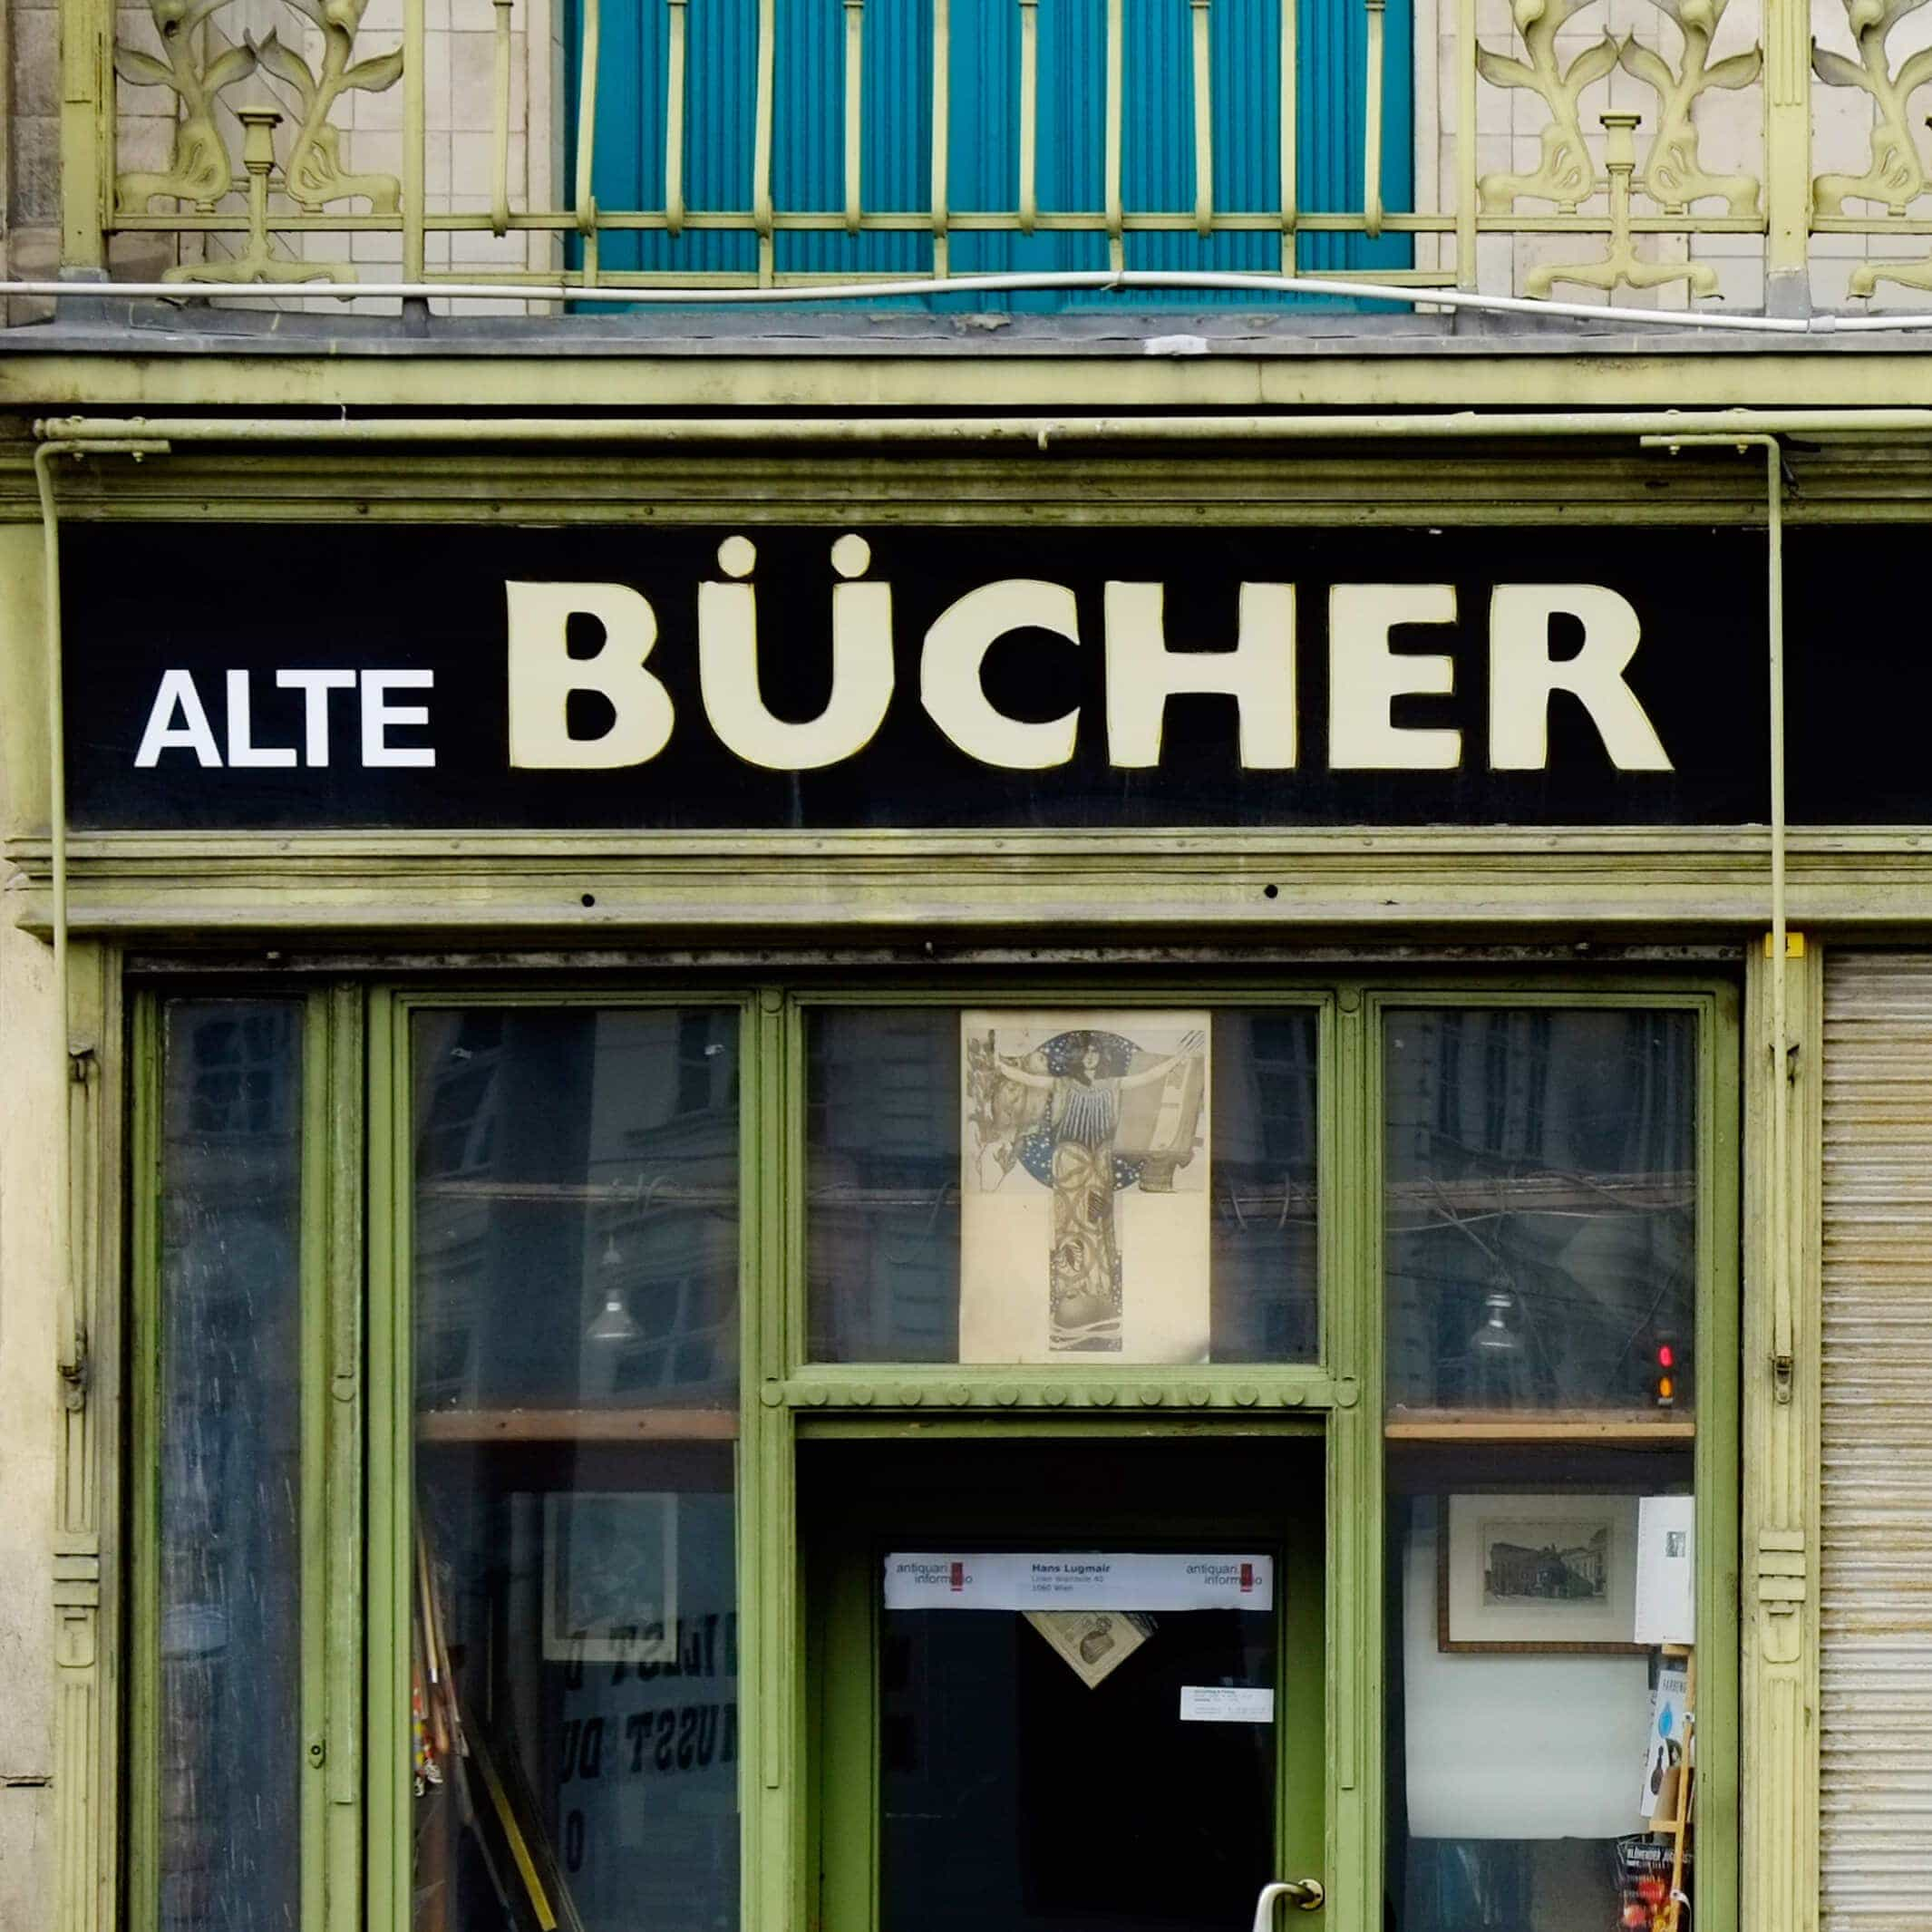 Viennese Retailers & Storefronts. Part I